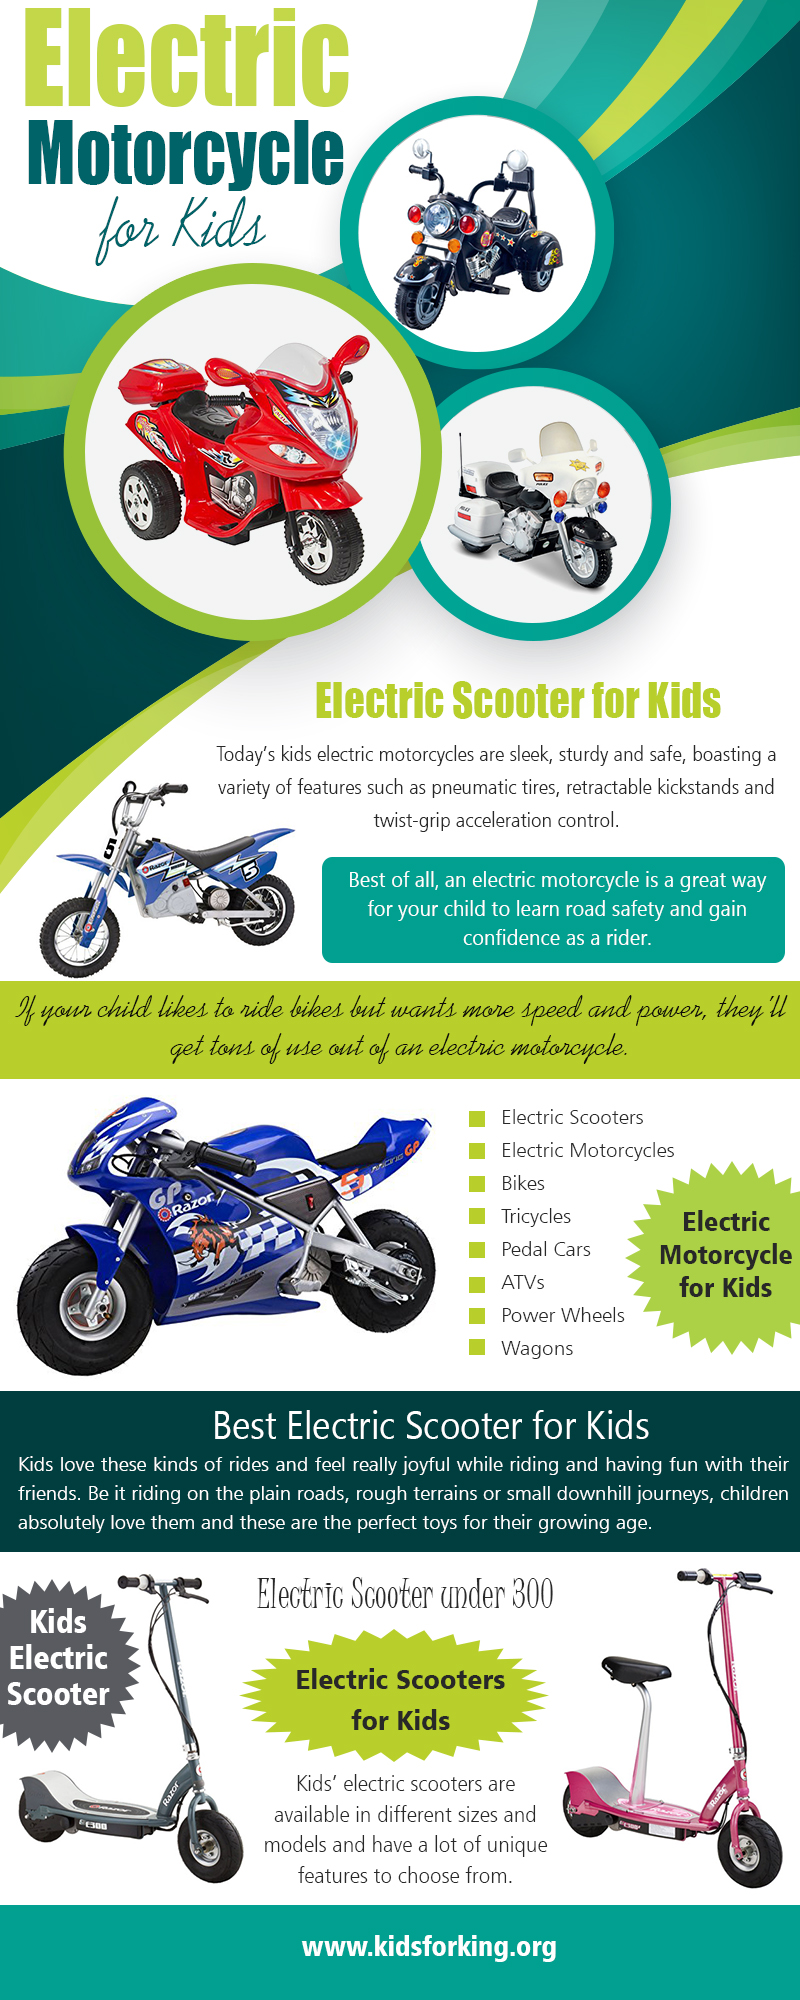 Electric Motorcycle for Kids | kidsforking.org